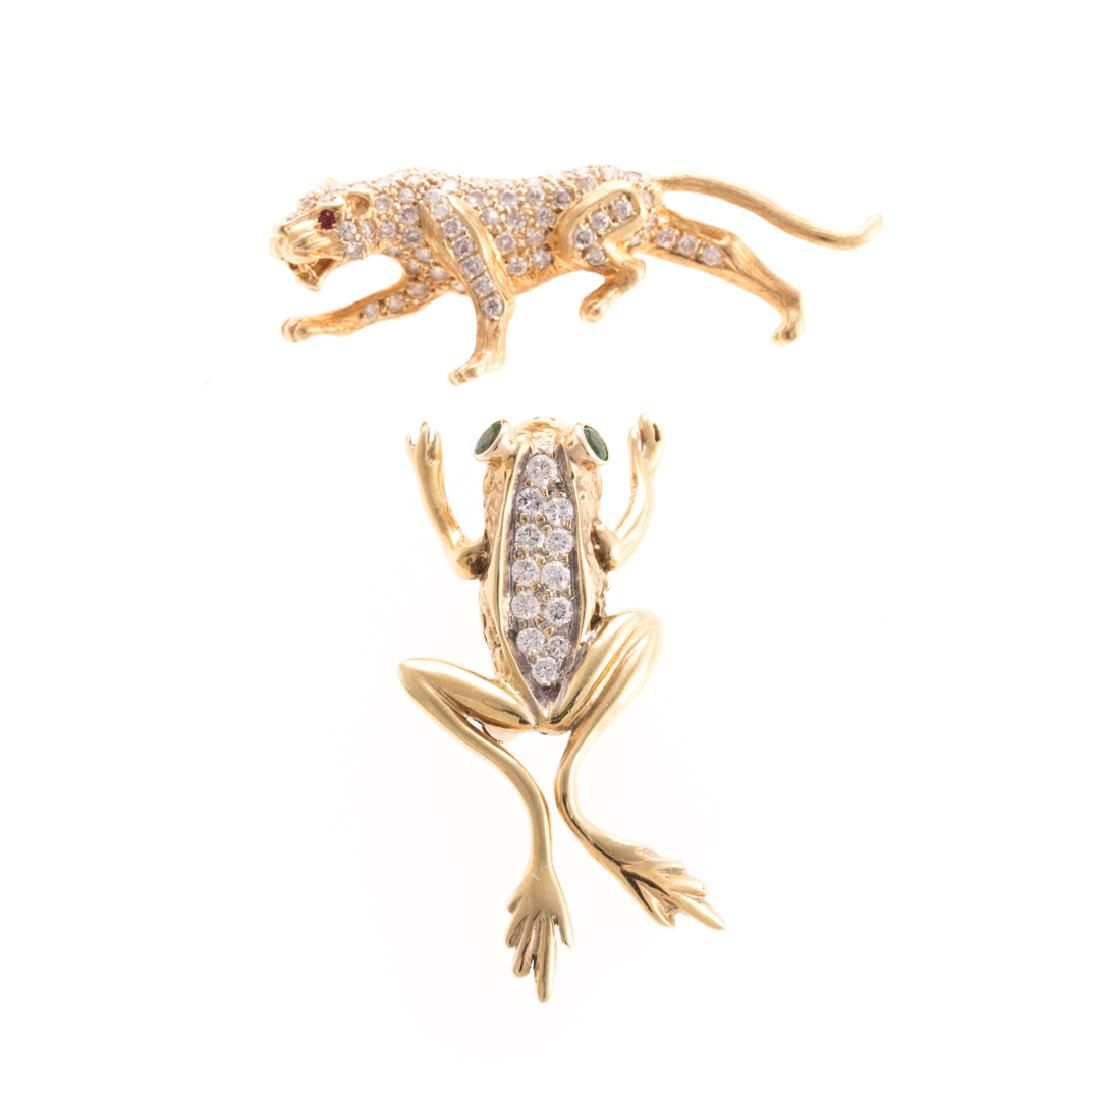 Two Lady's Animal Pins in Diamonds & Gold